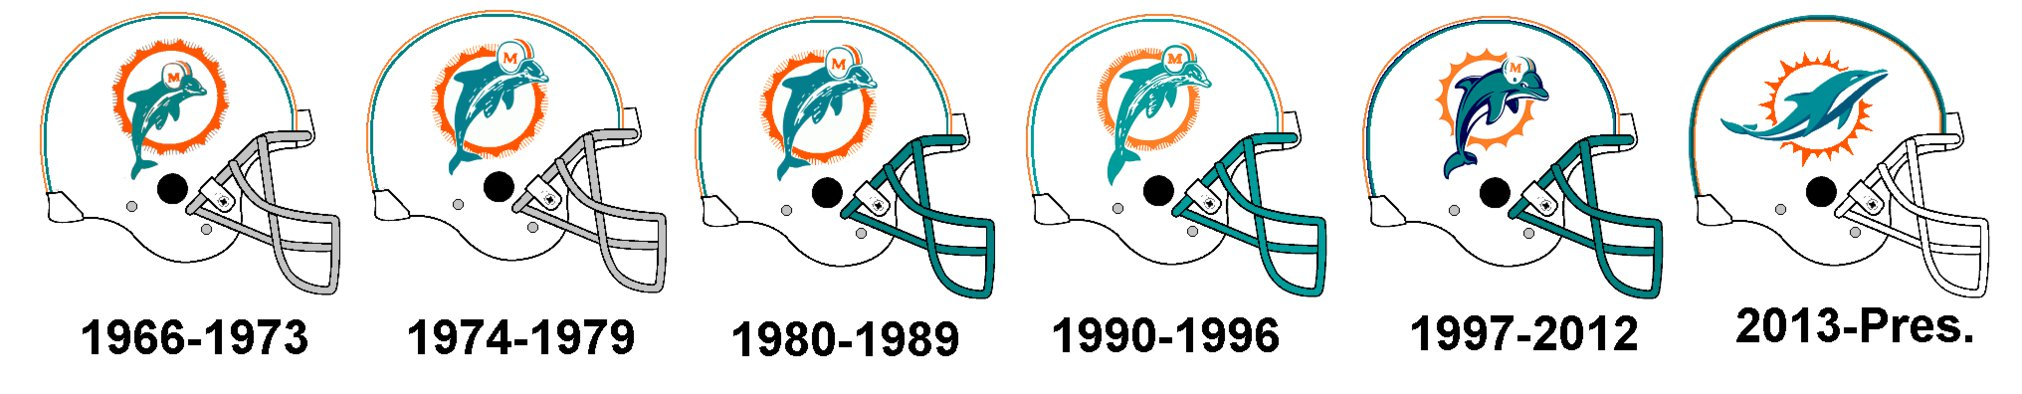 History of the Miami Dolphins helmets by Chenglor55 2022x394